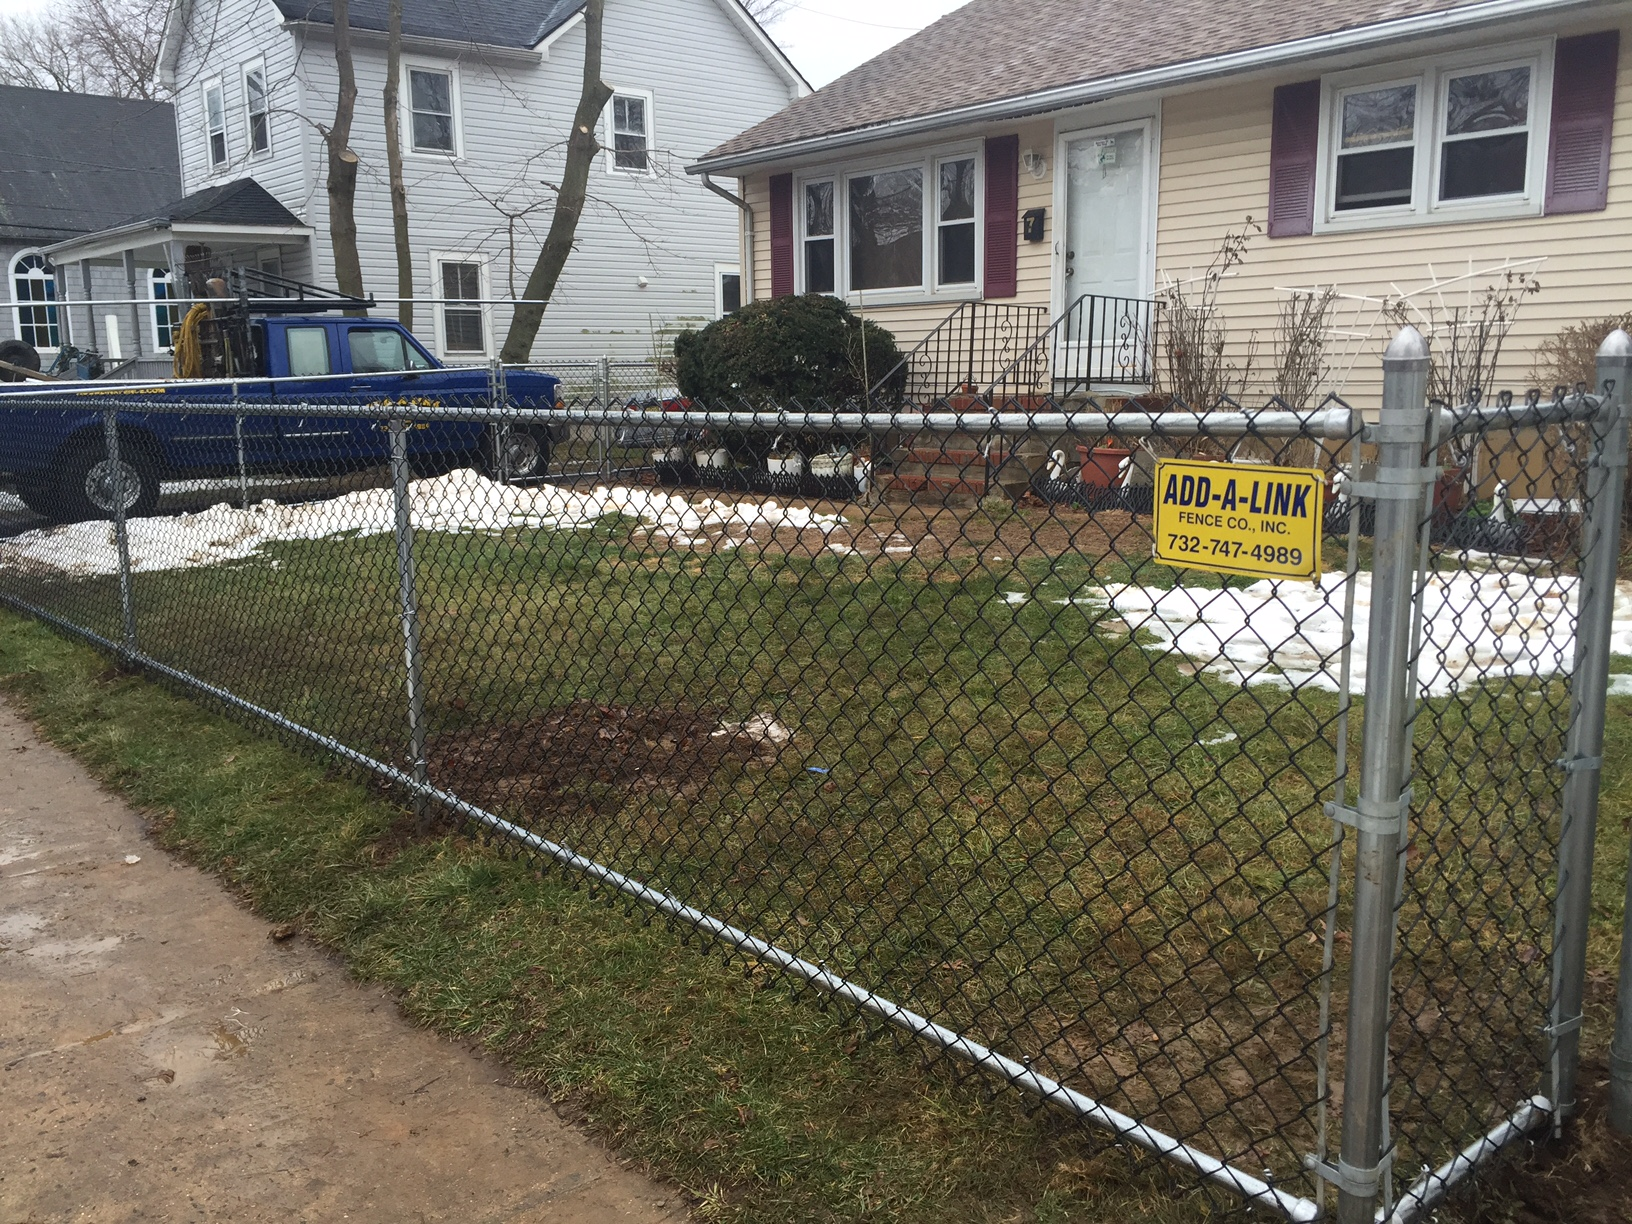 chain link fencing add a link fence company nj fence contractor